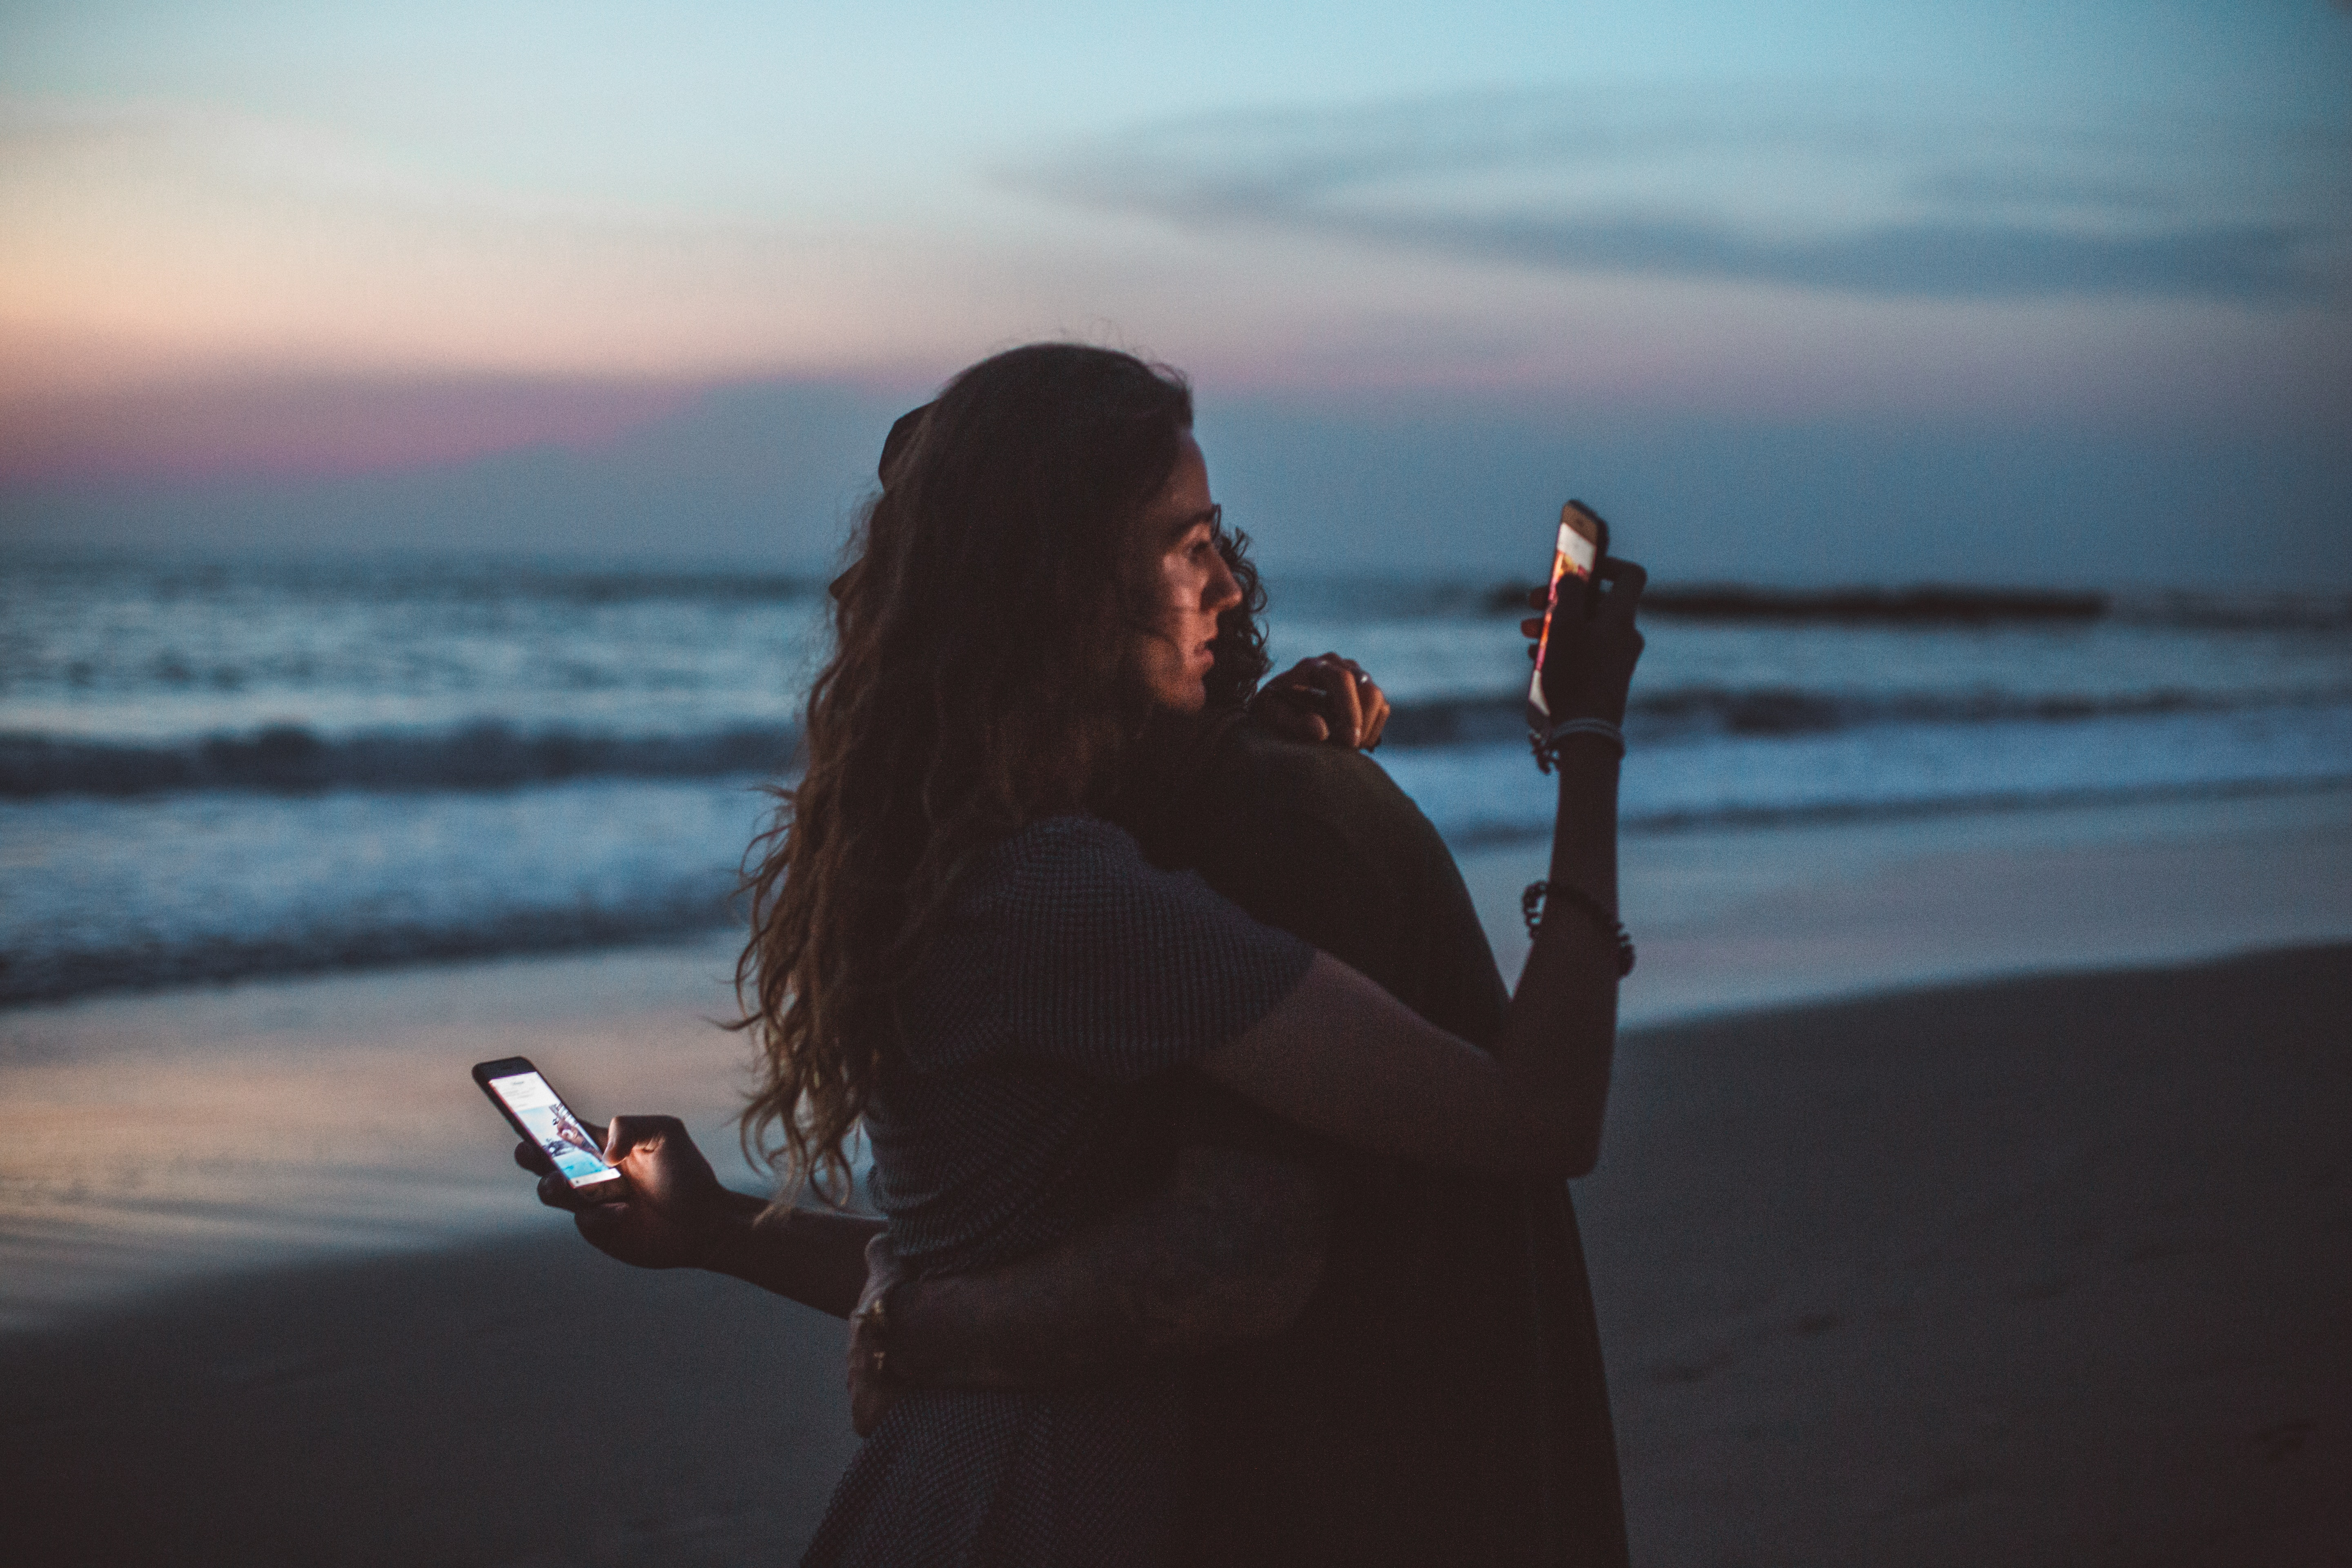 Couple hugging with phones in their hands